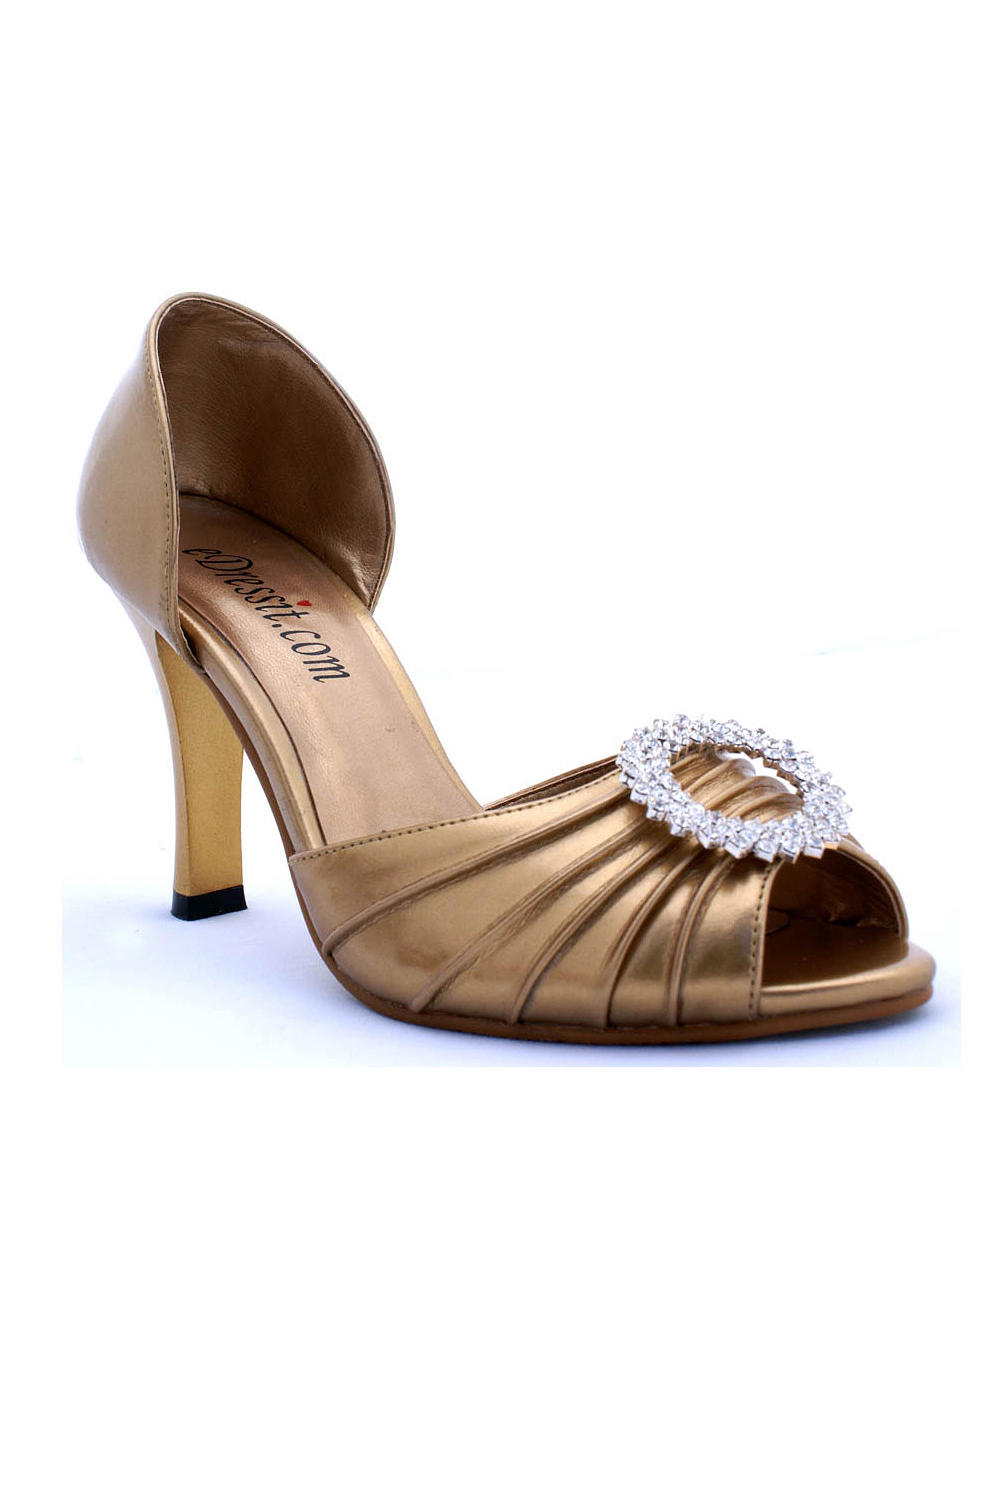 edressit chaussures or (09770324)